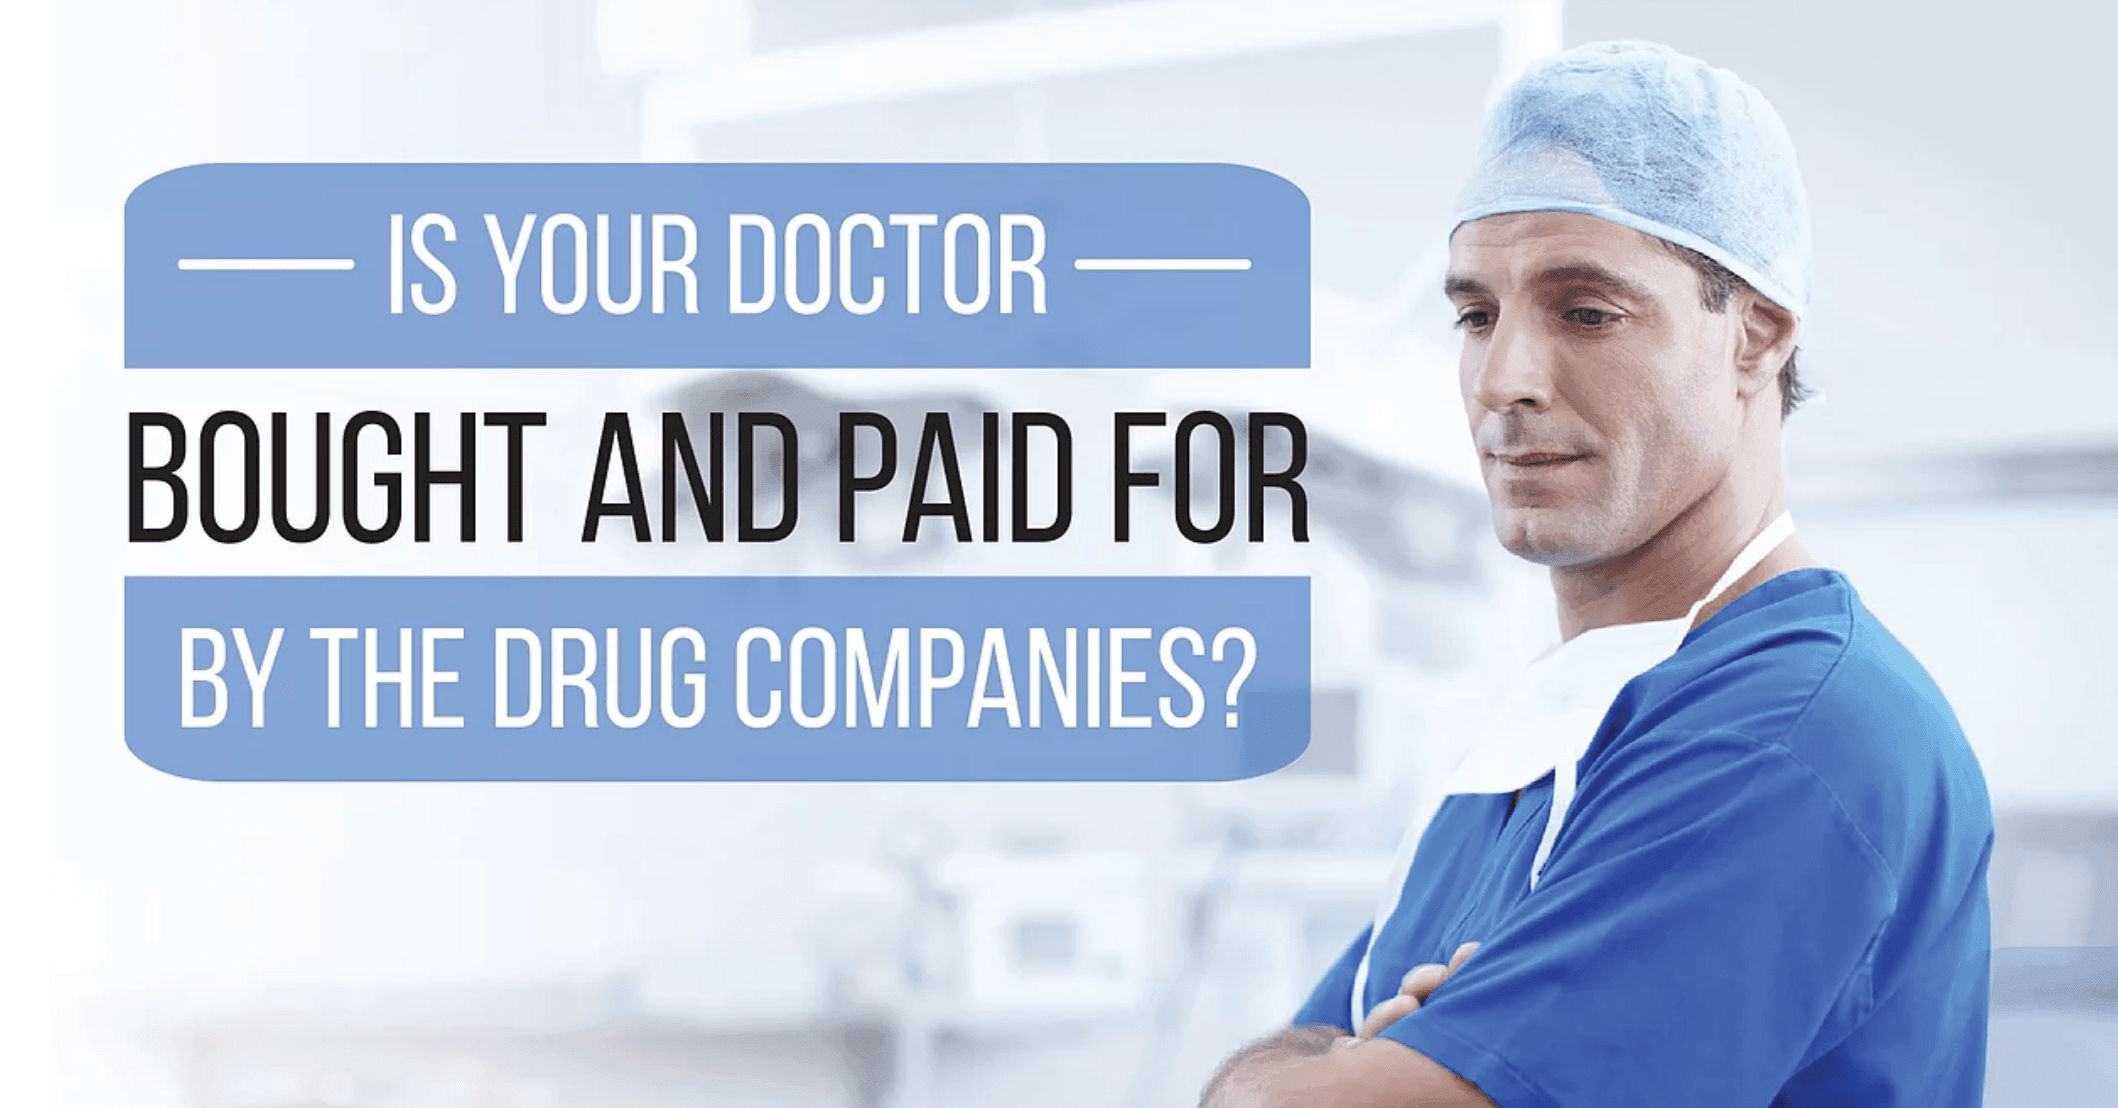 Is Your Doctor Bought And Paid For By the Drug Companies?